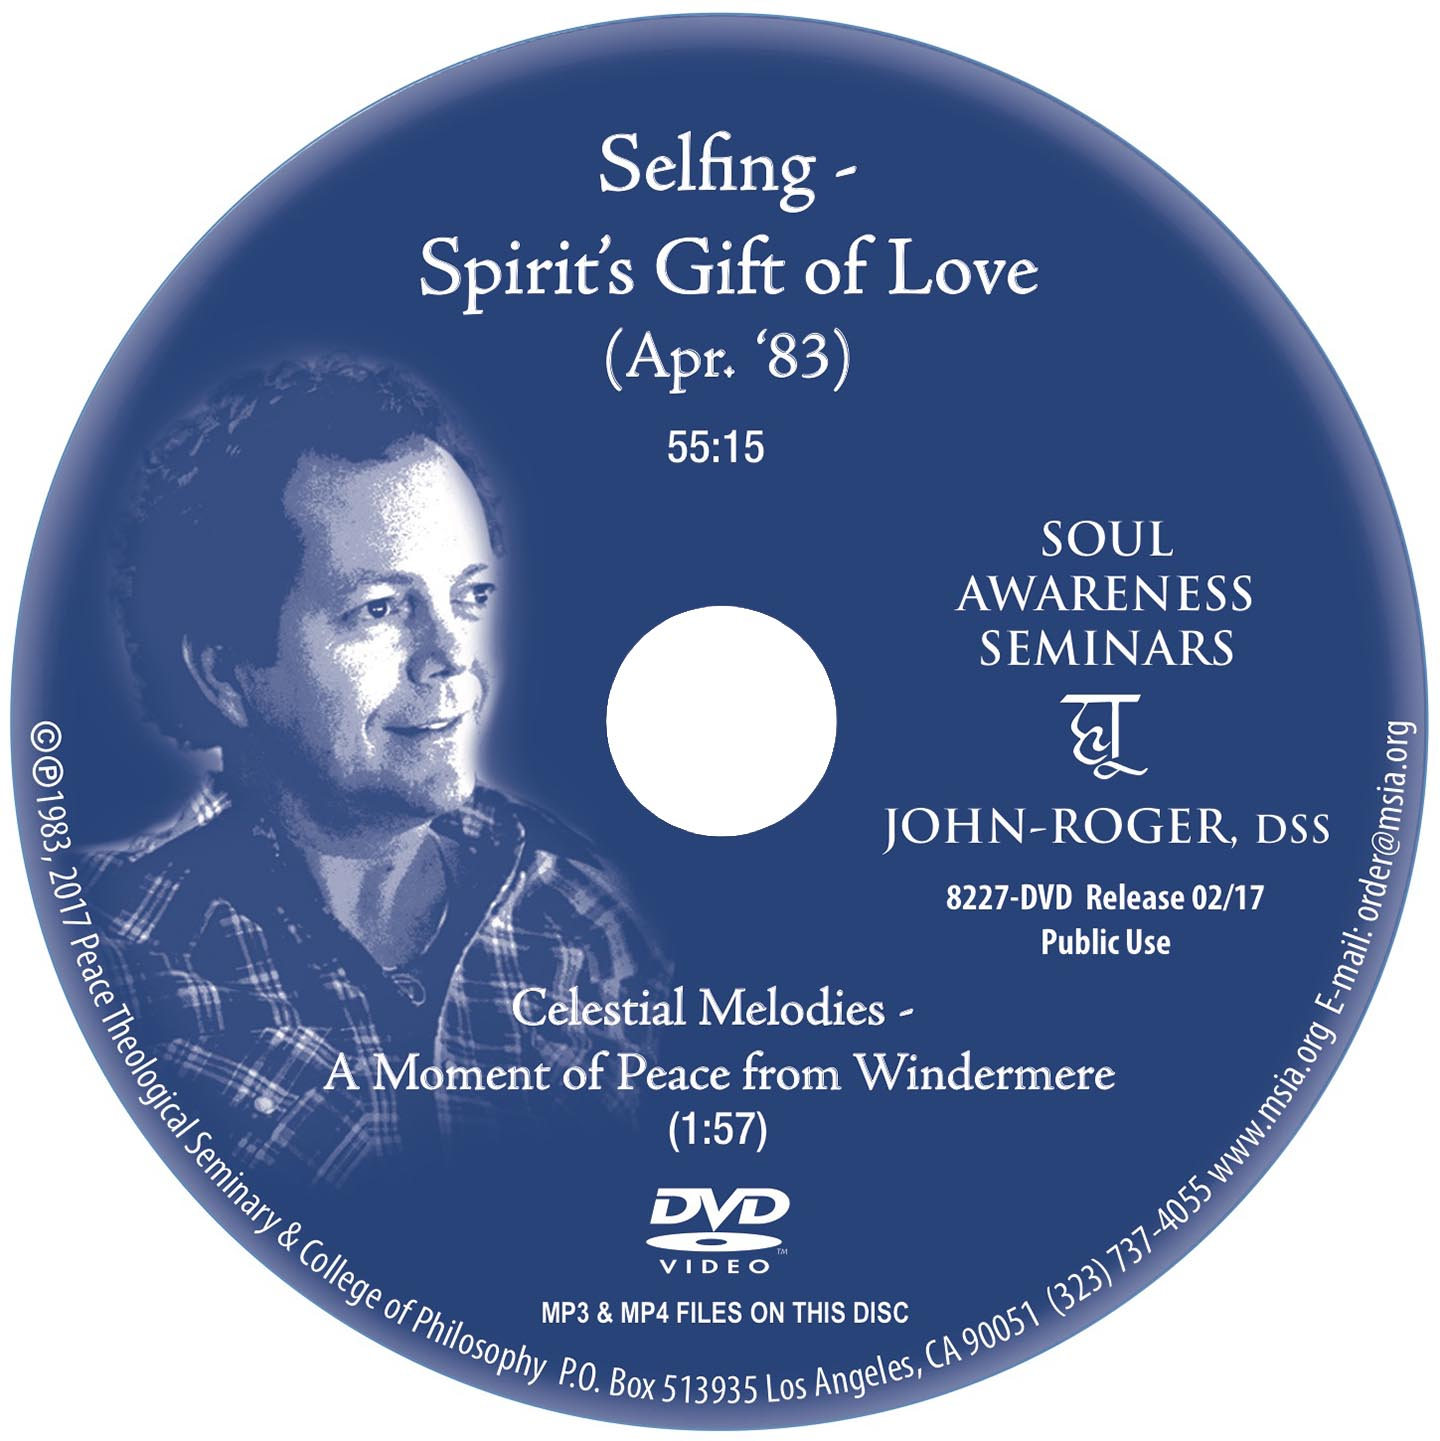 Selfing - Spirit's Gift of Love MP4